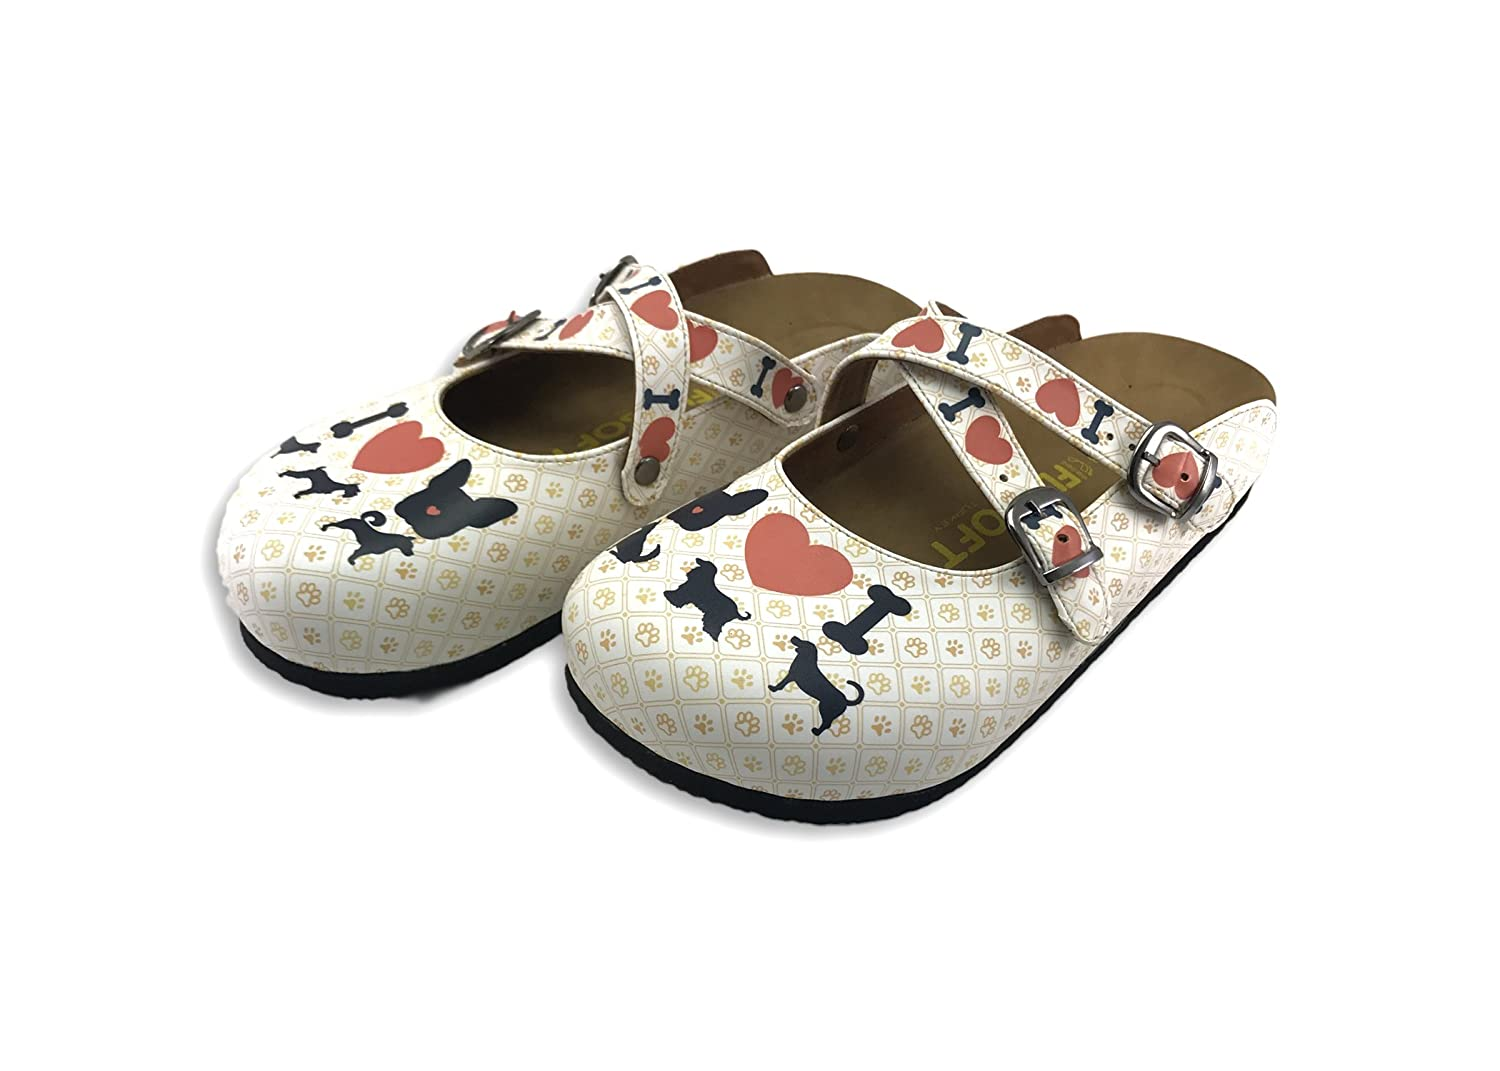 57f074a8724d Fly Soft Bonito Women Casual Slip-on Clogs